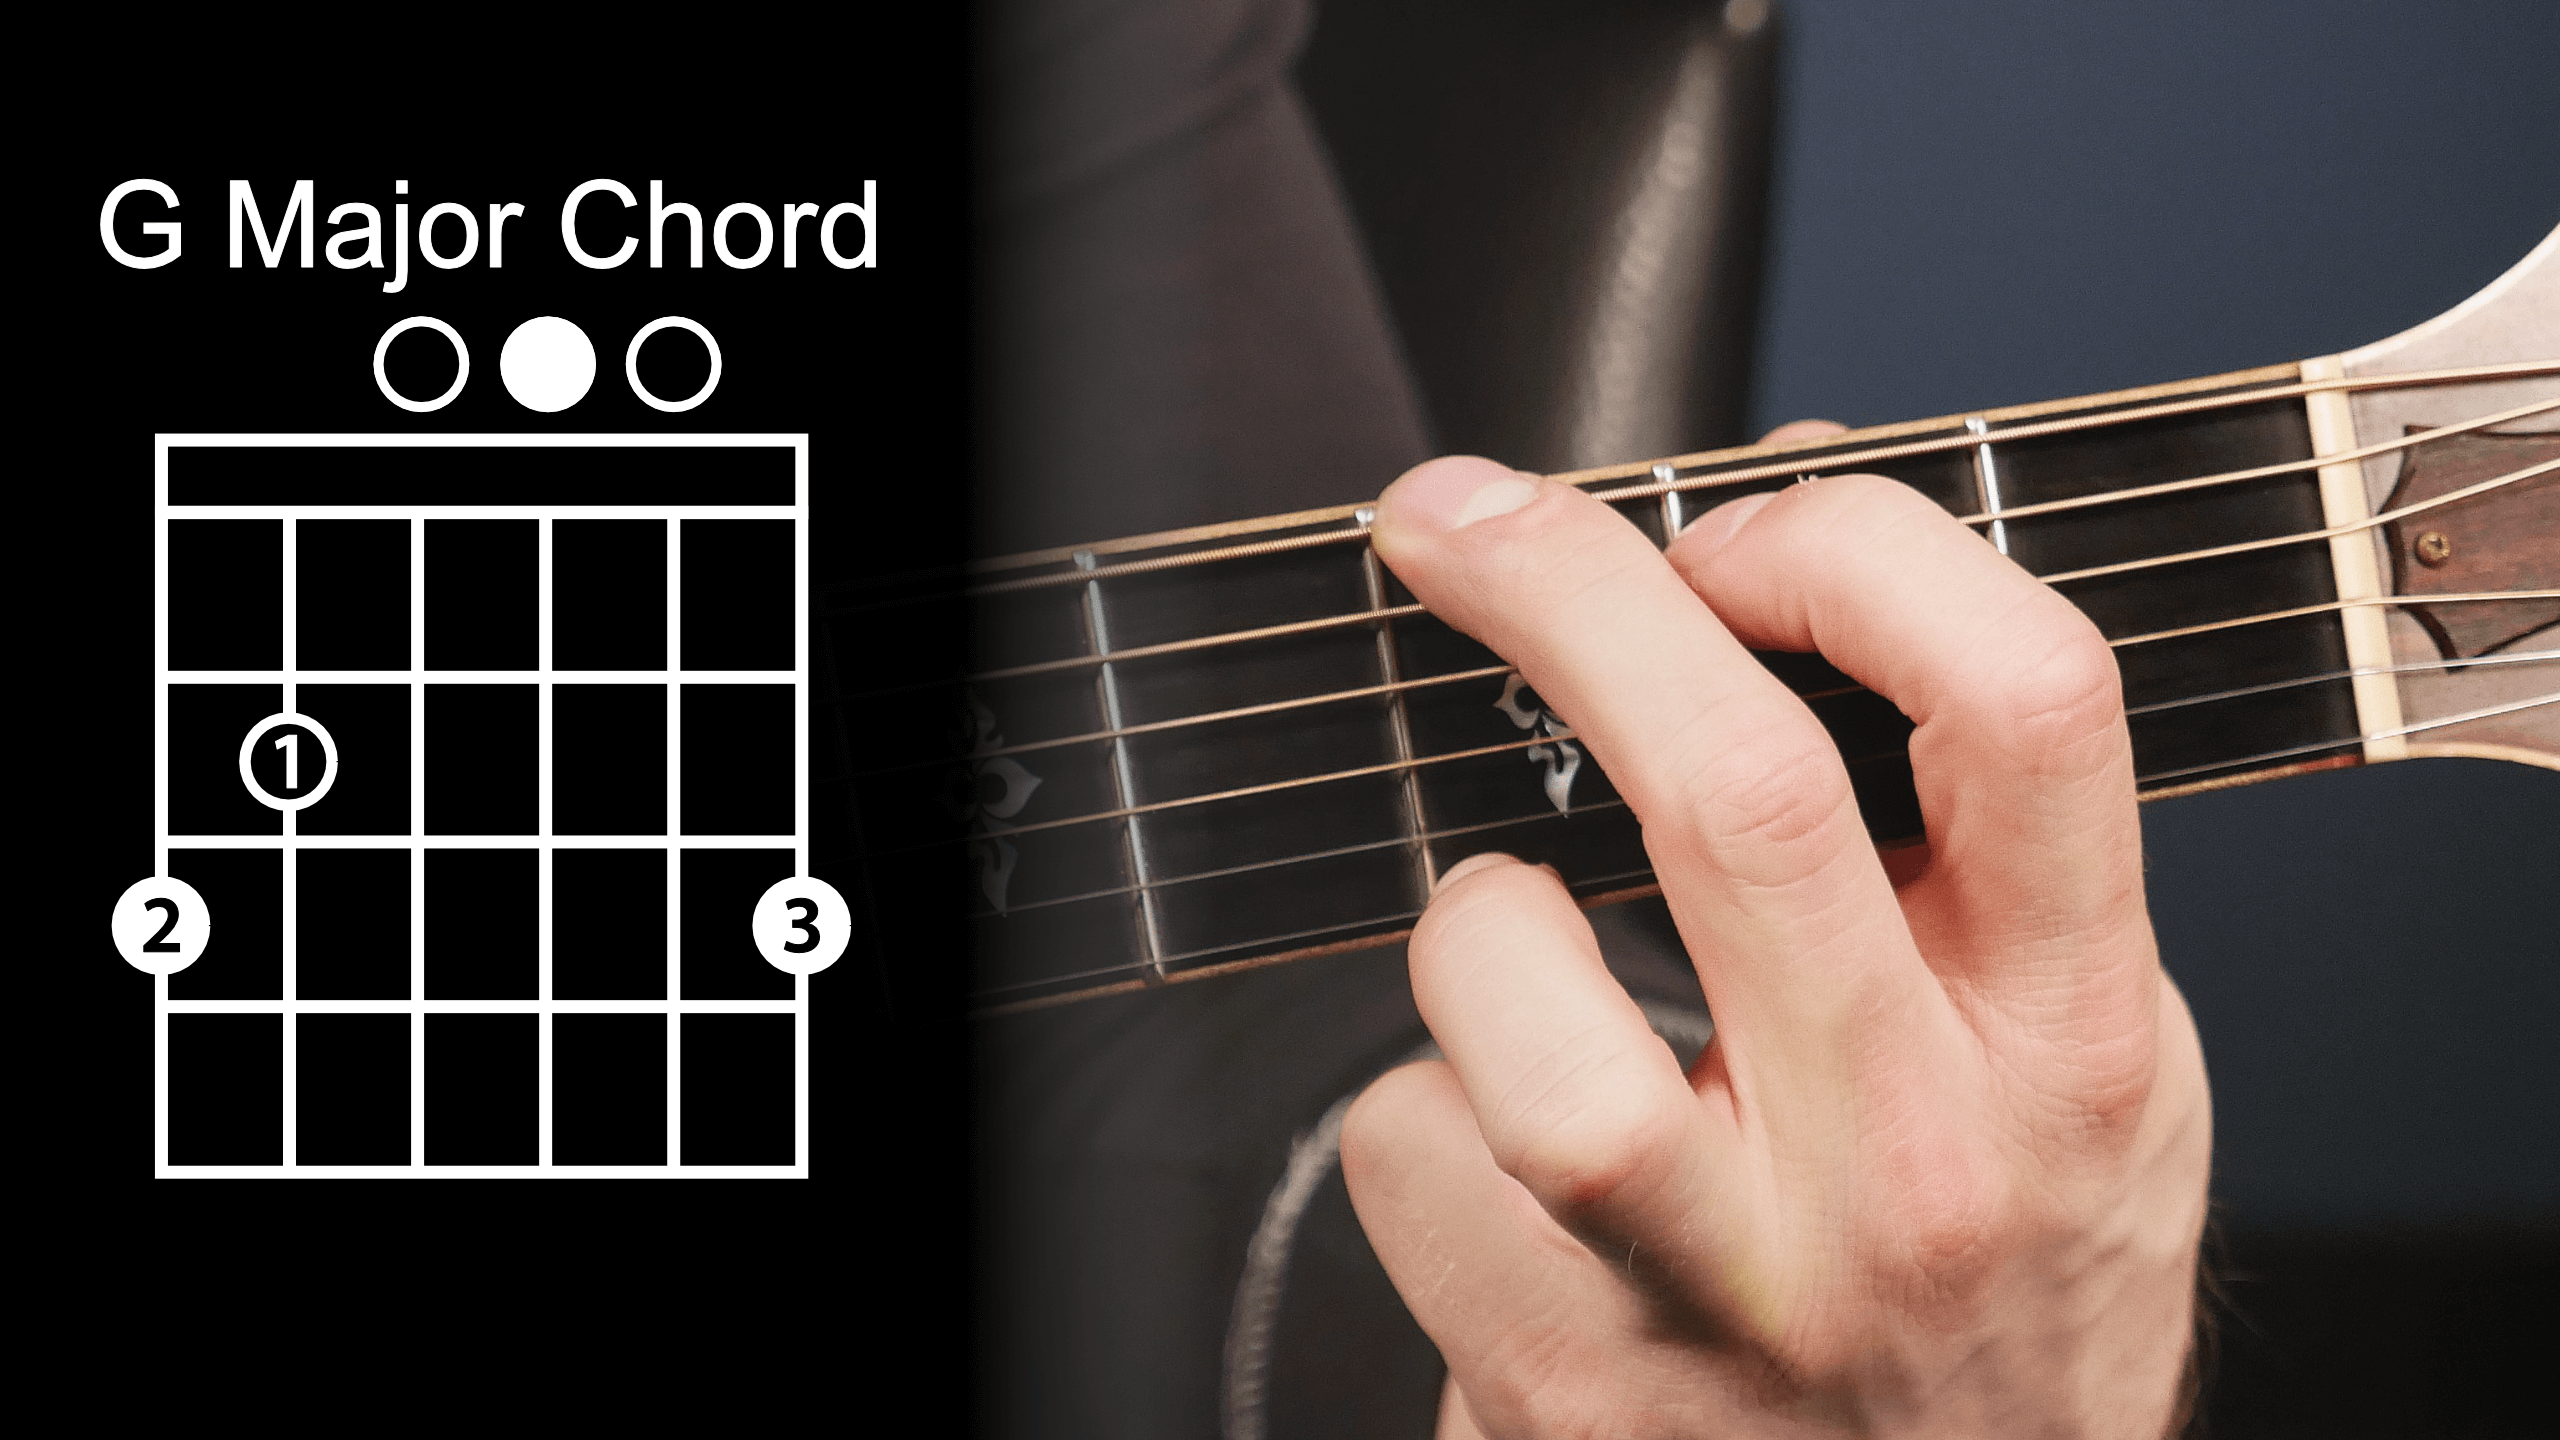 G Major Chord Diagram